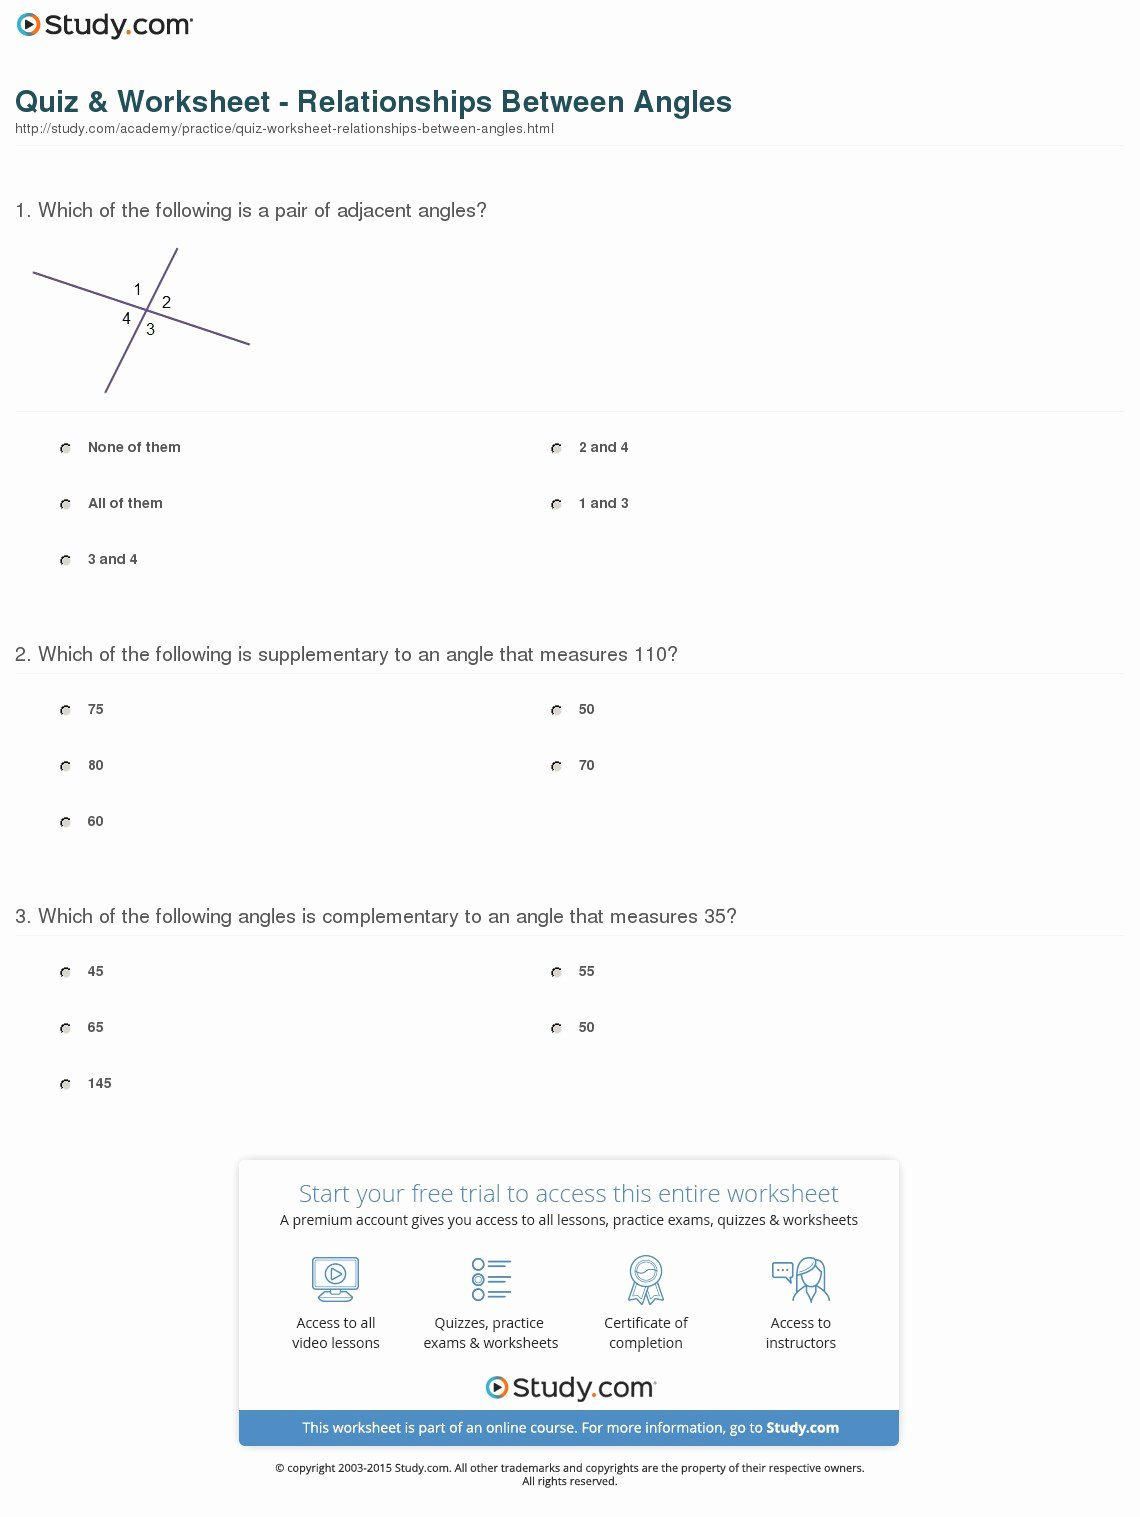 Angle Pair Relationships Worksheet Elegant Quiz & Worksheet Relationships Between Angles